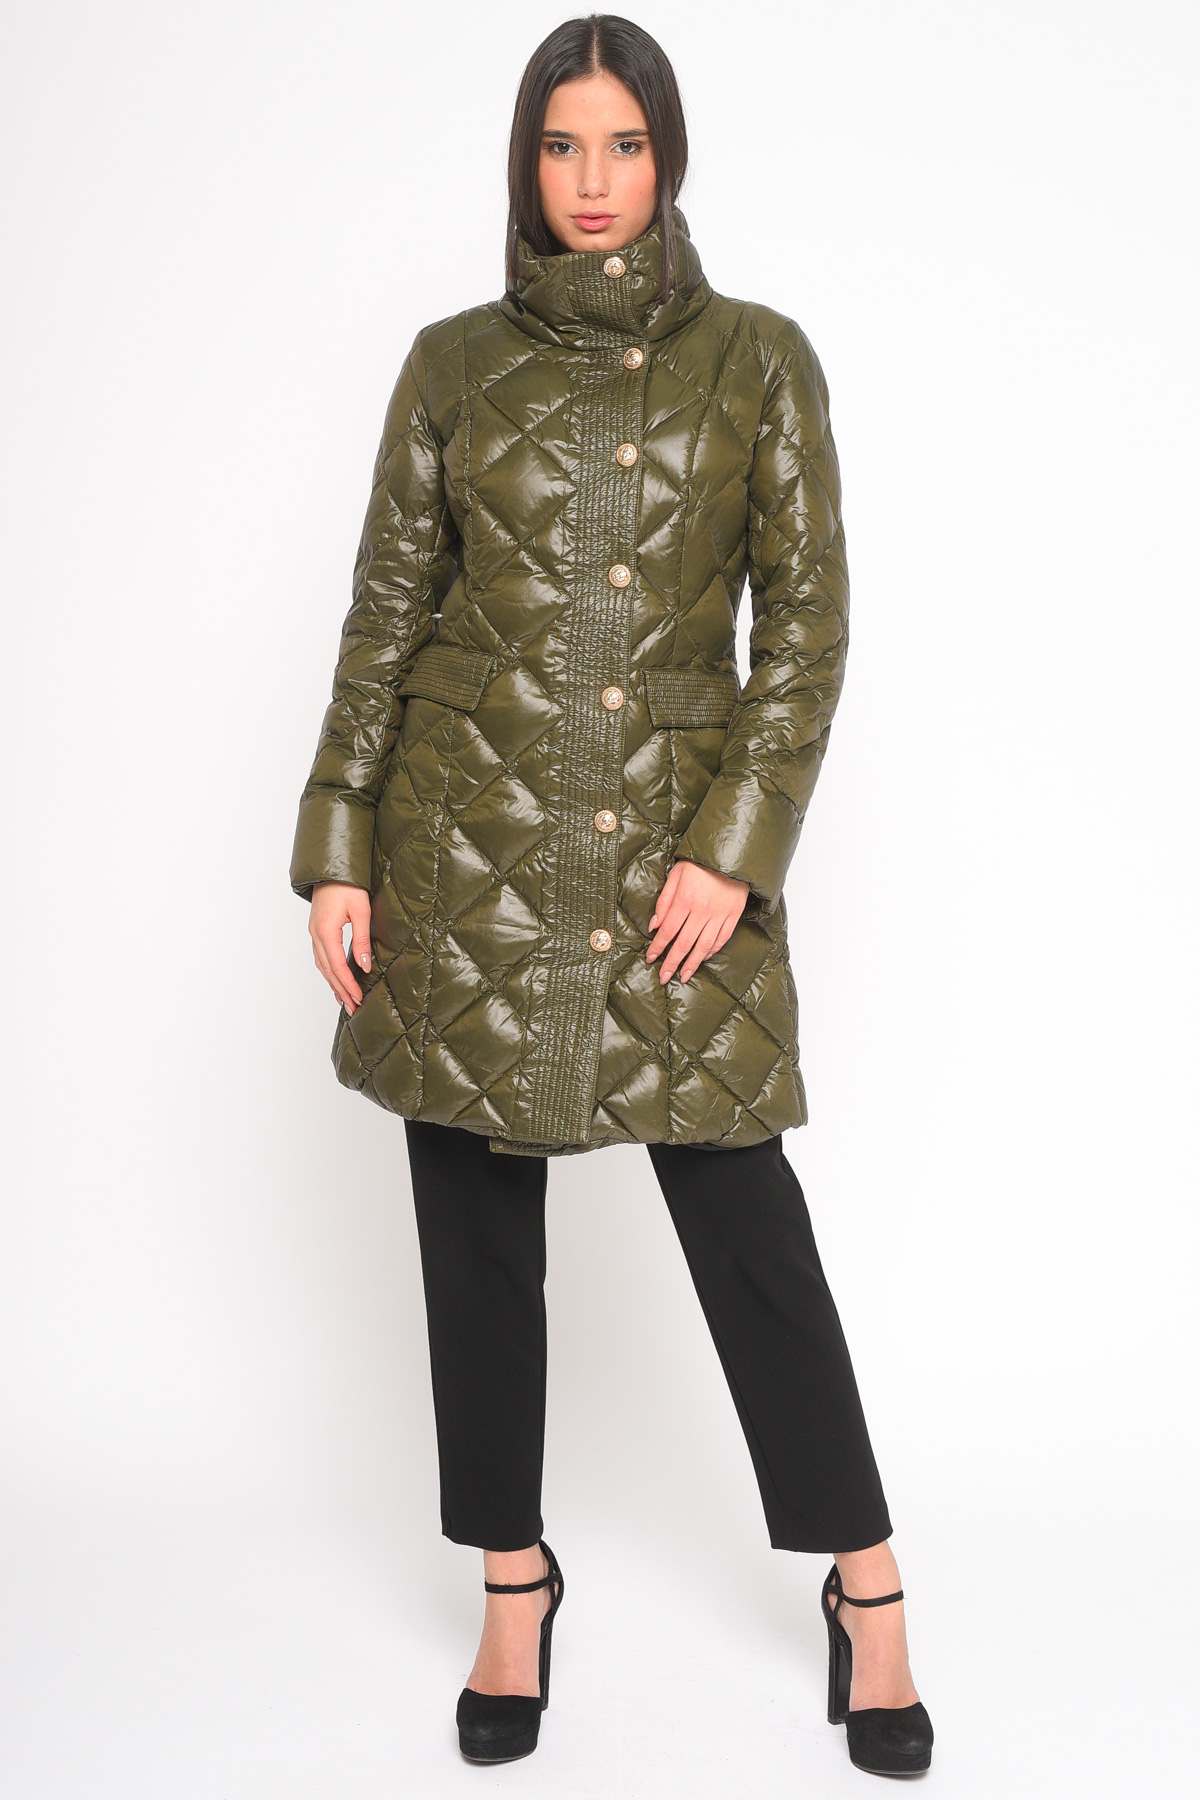 MEDIUM-LENGTH DOWN JACKET IN REAL FEATHER WITH GOLDEN BUTTONS  for woman - DARK GREEN - Paquito Pronto Moda Shop Online